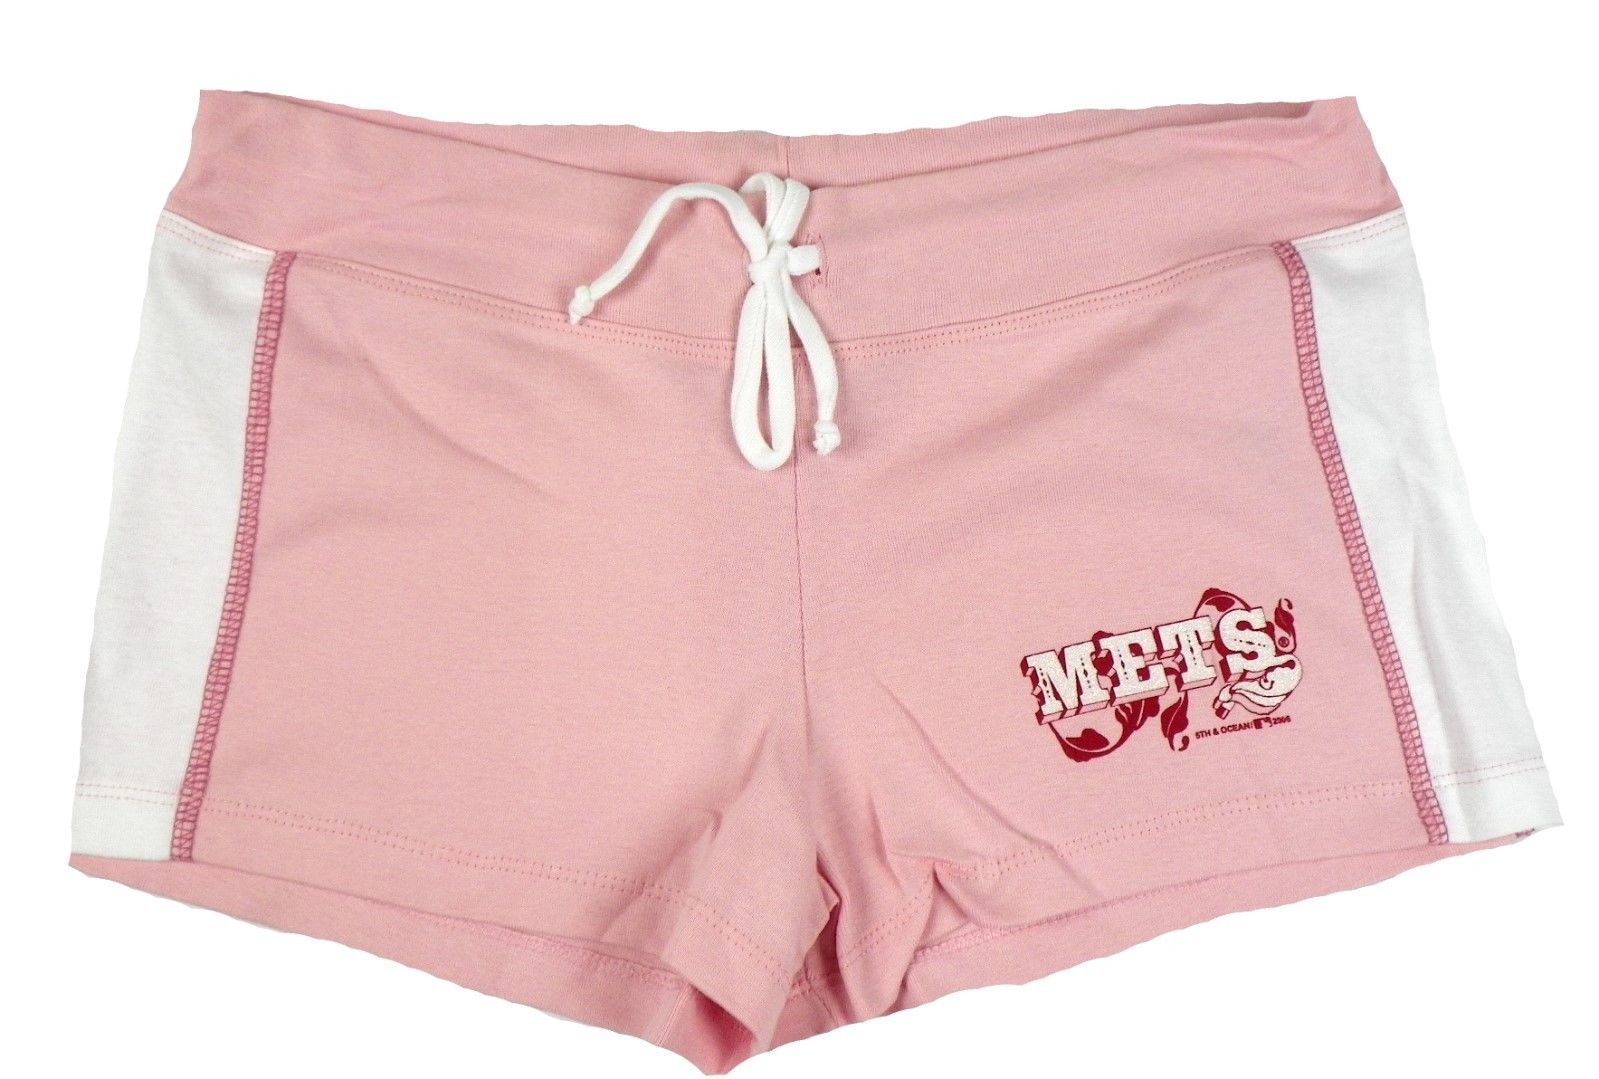 Junior Women's New York Mets Shorts Pink Pastel Lounge MLB Baseball Short